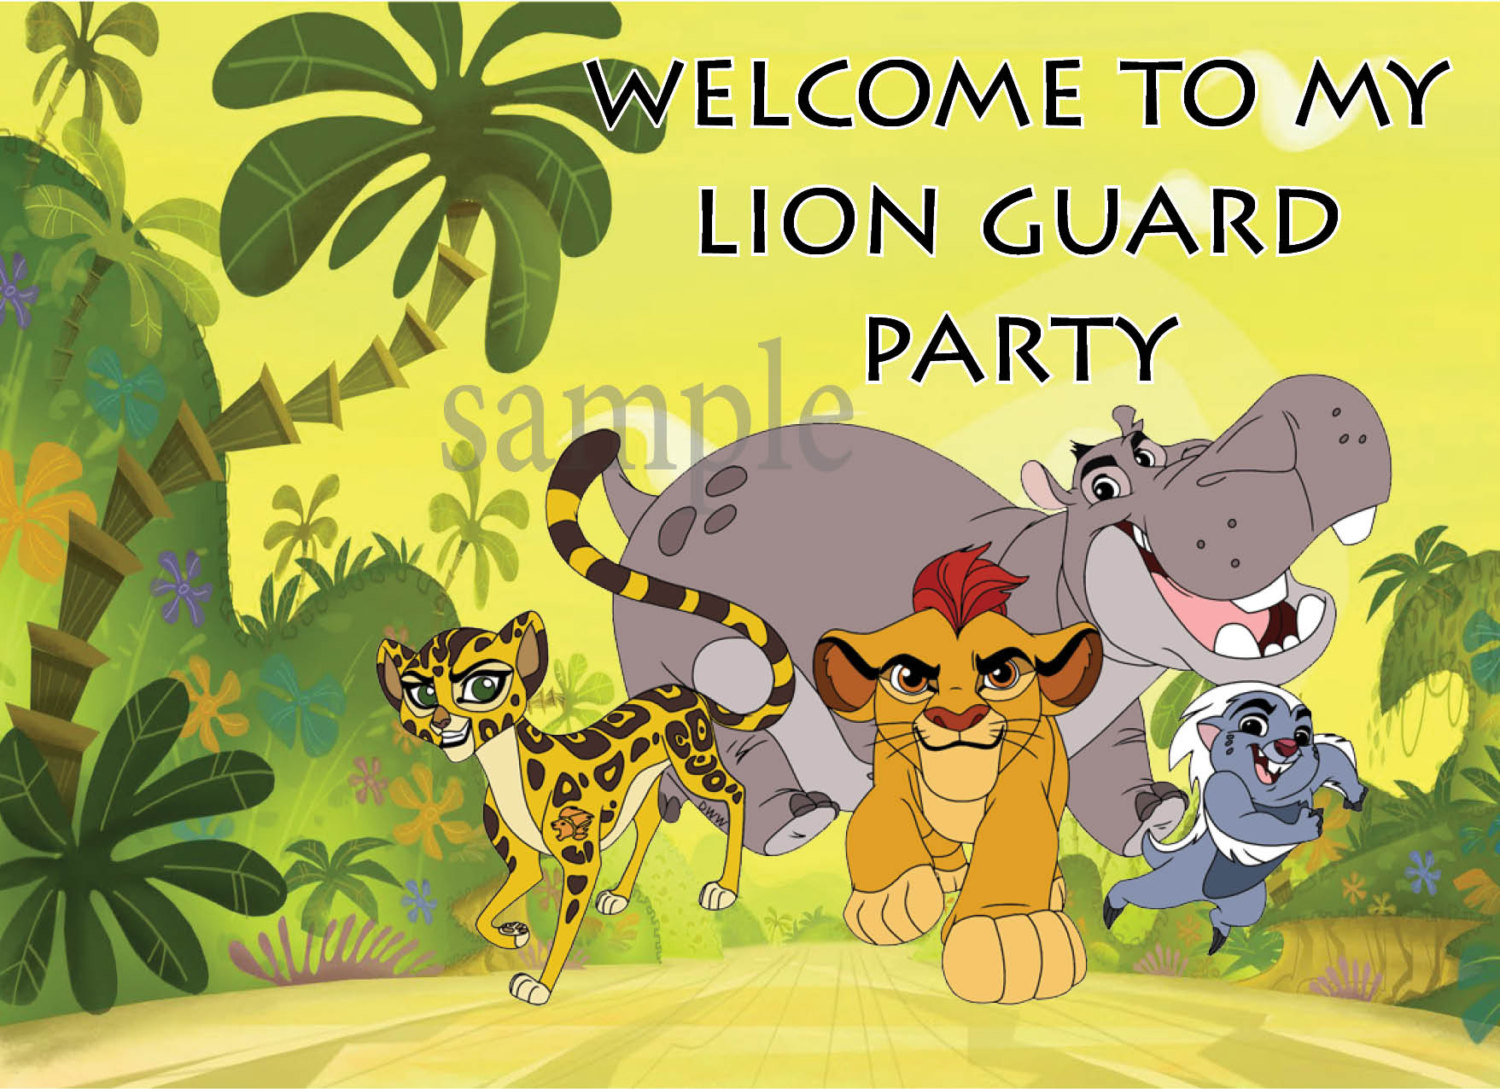 The Lion Guard Party